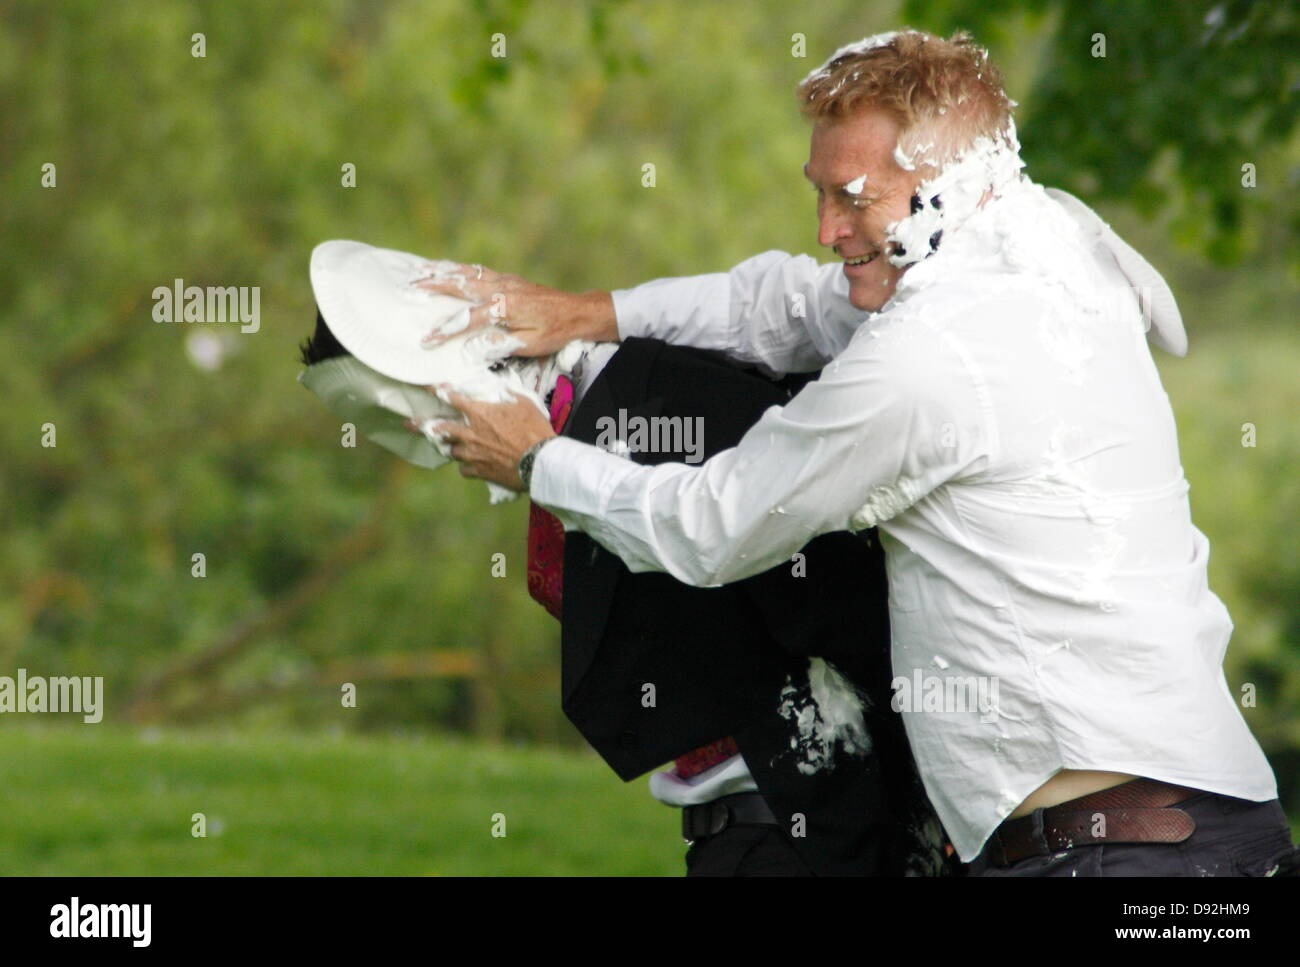 Bakewell, Derbyshire,UK. 9th June 2013. Competitors in the Mr Darcy Custard Pie Fight that took place as part of - Stock Image